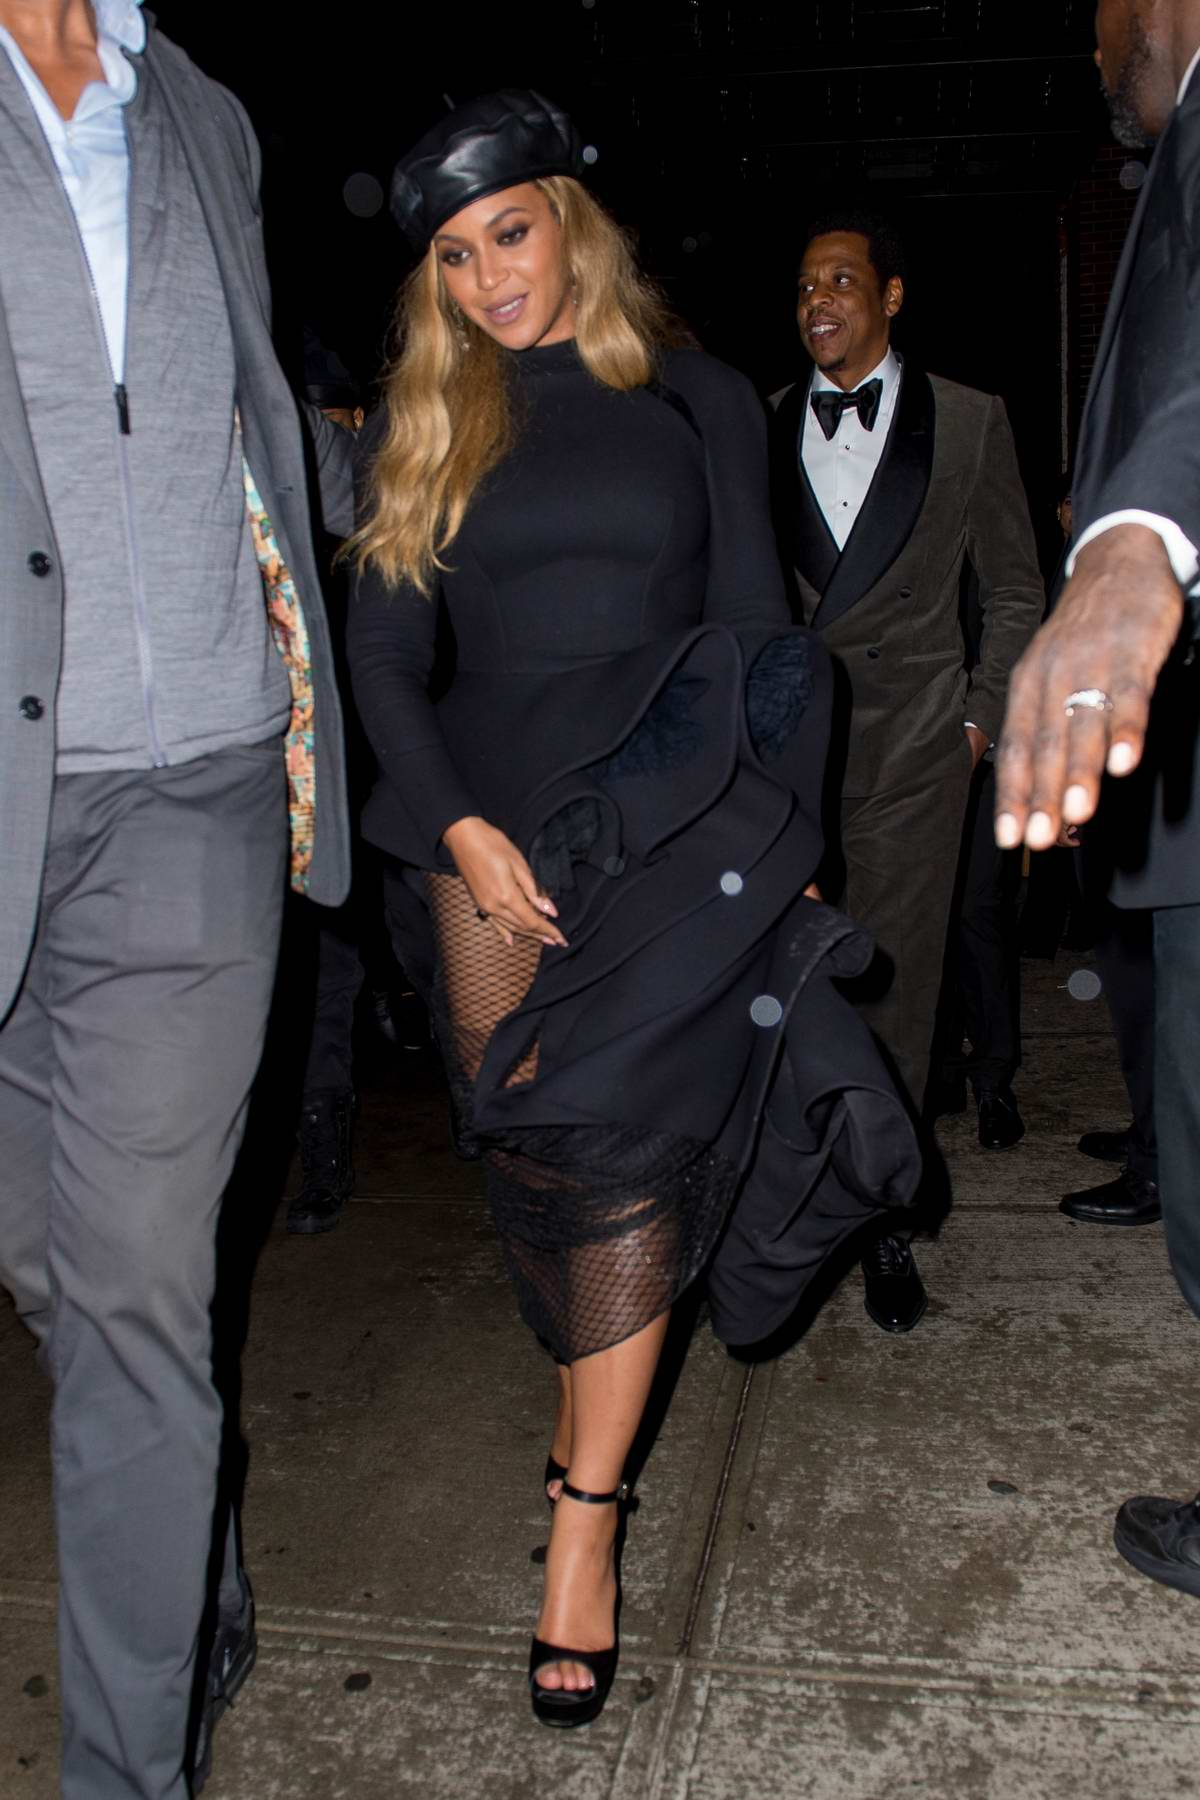 Beyonce and Jay-Z spotted out at Catch Restaurant in New York City